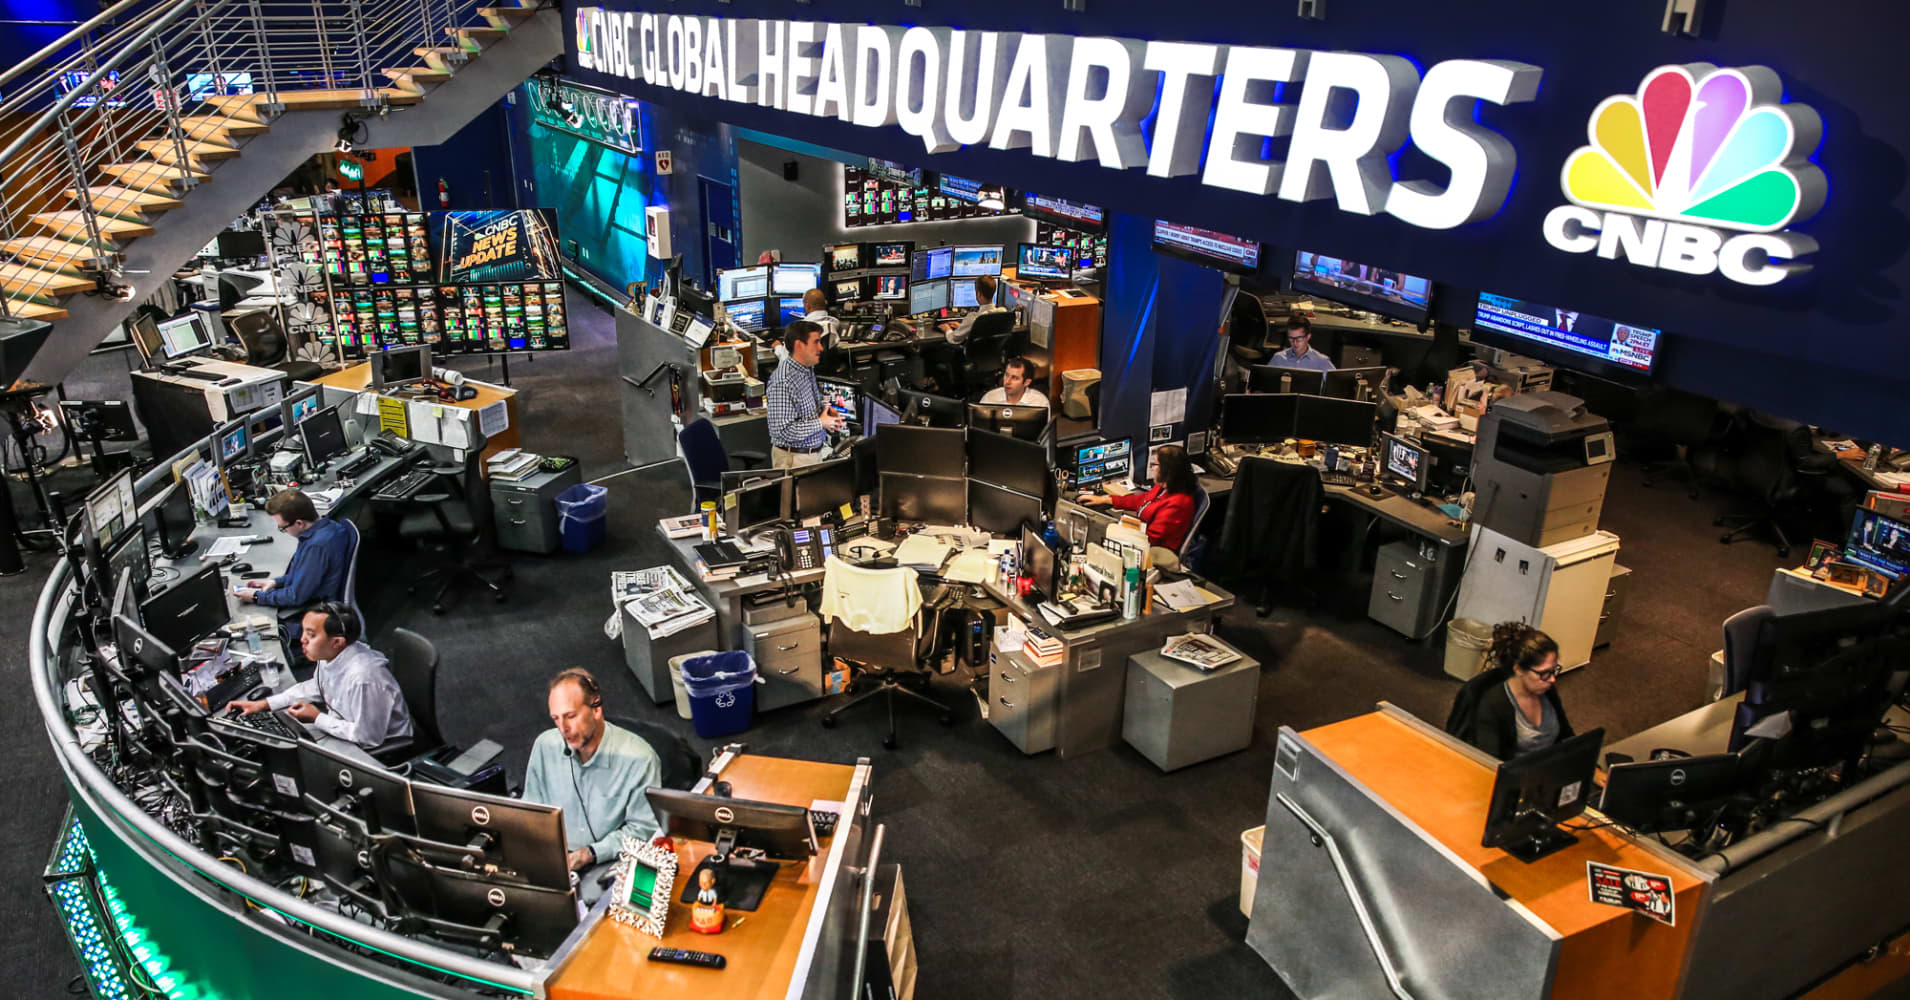 CNBC Newsroom Fellowship Program